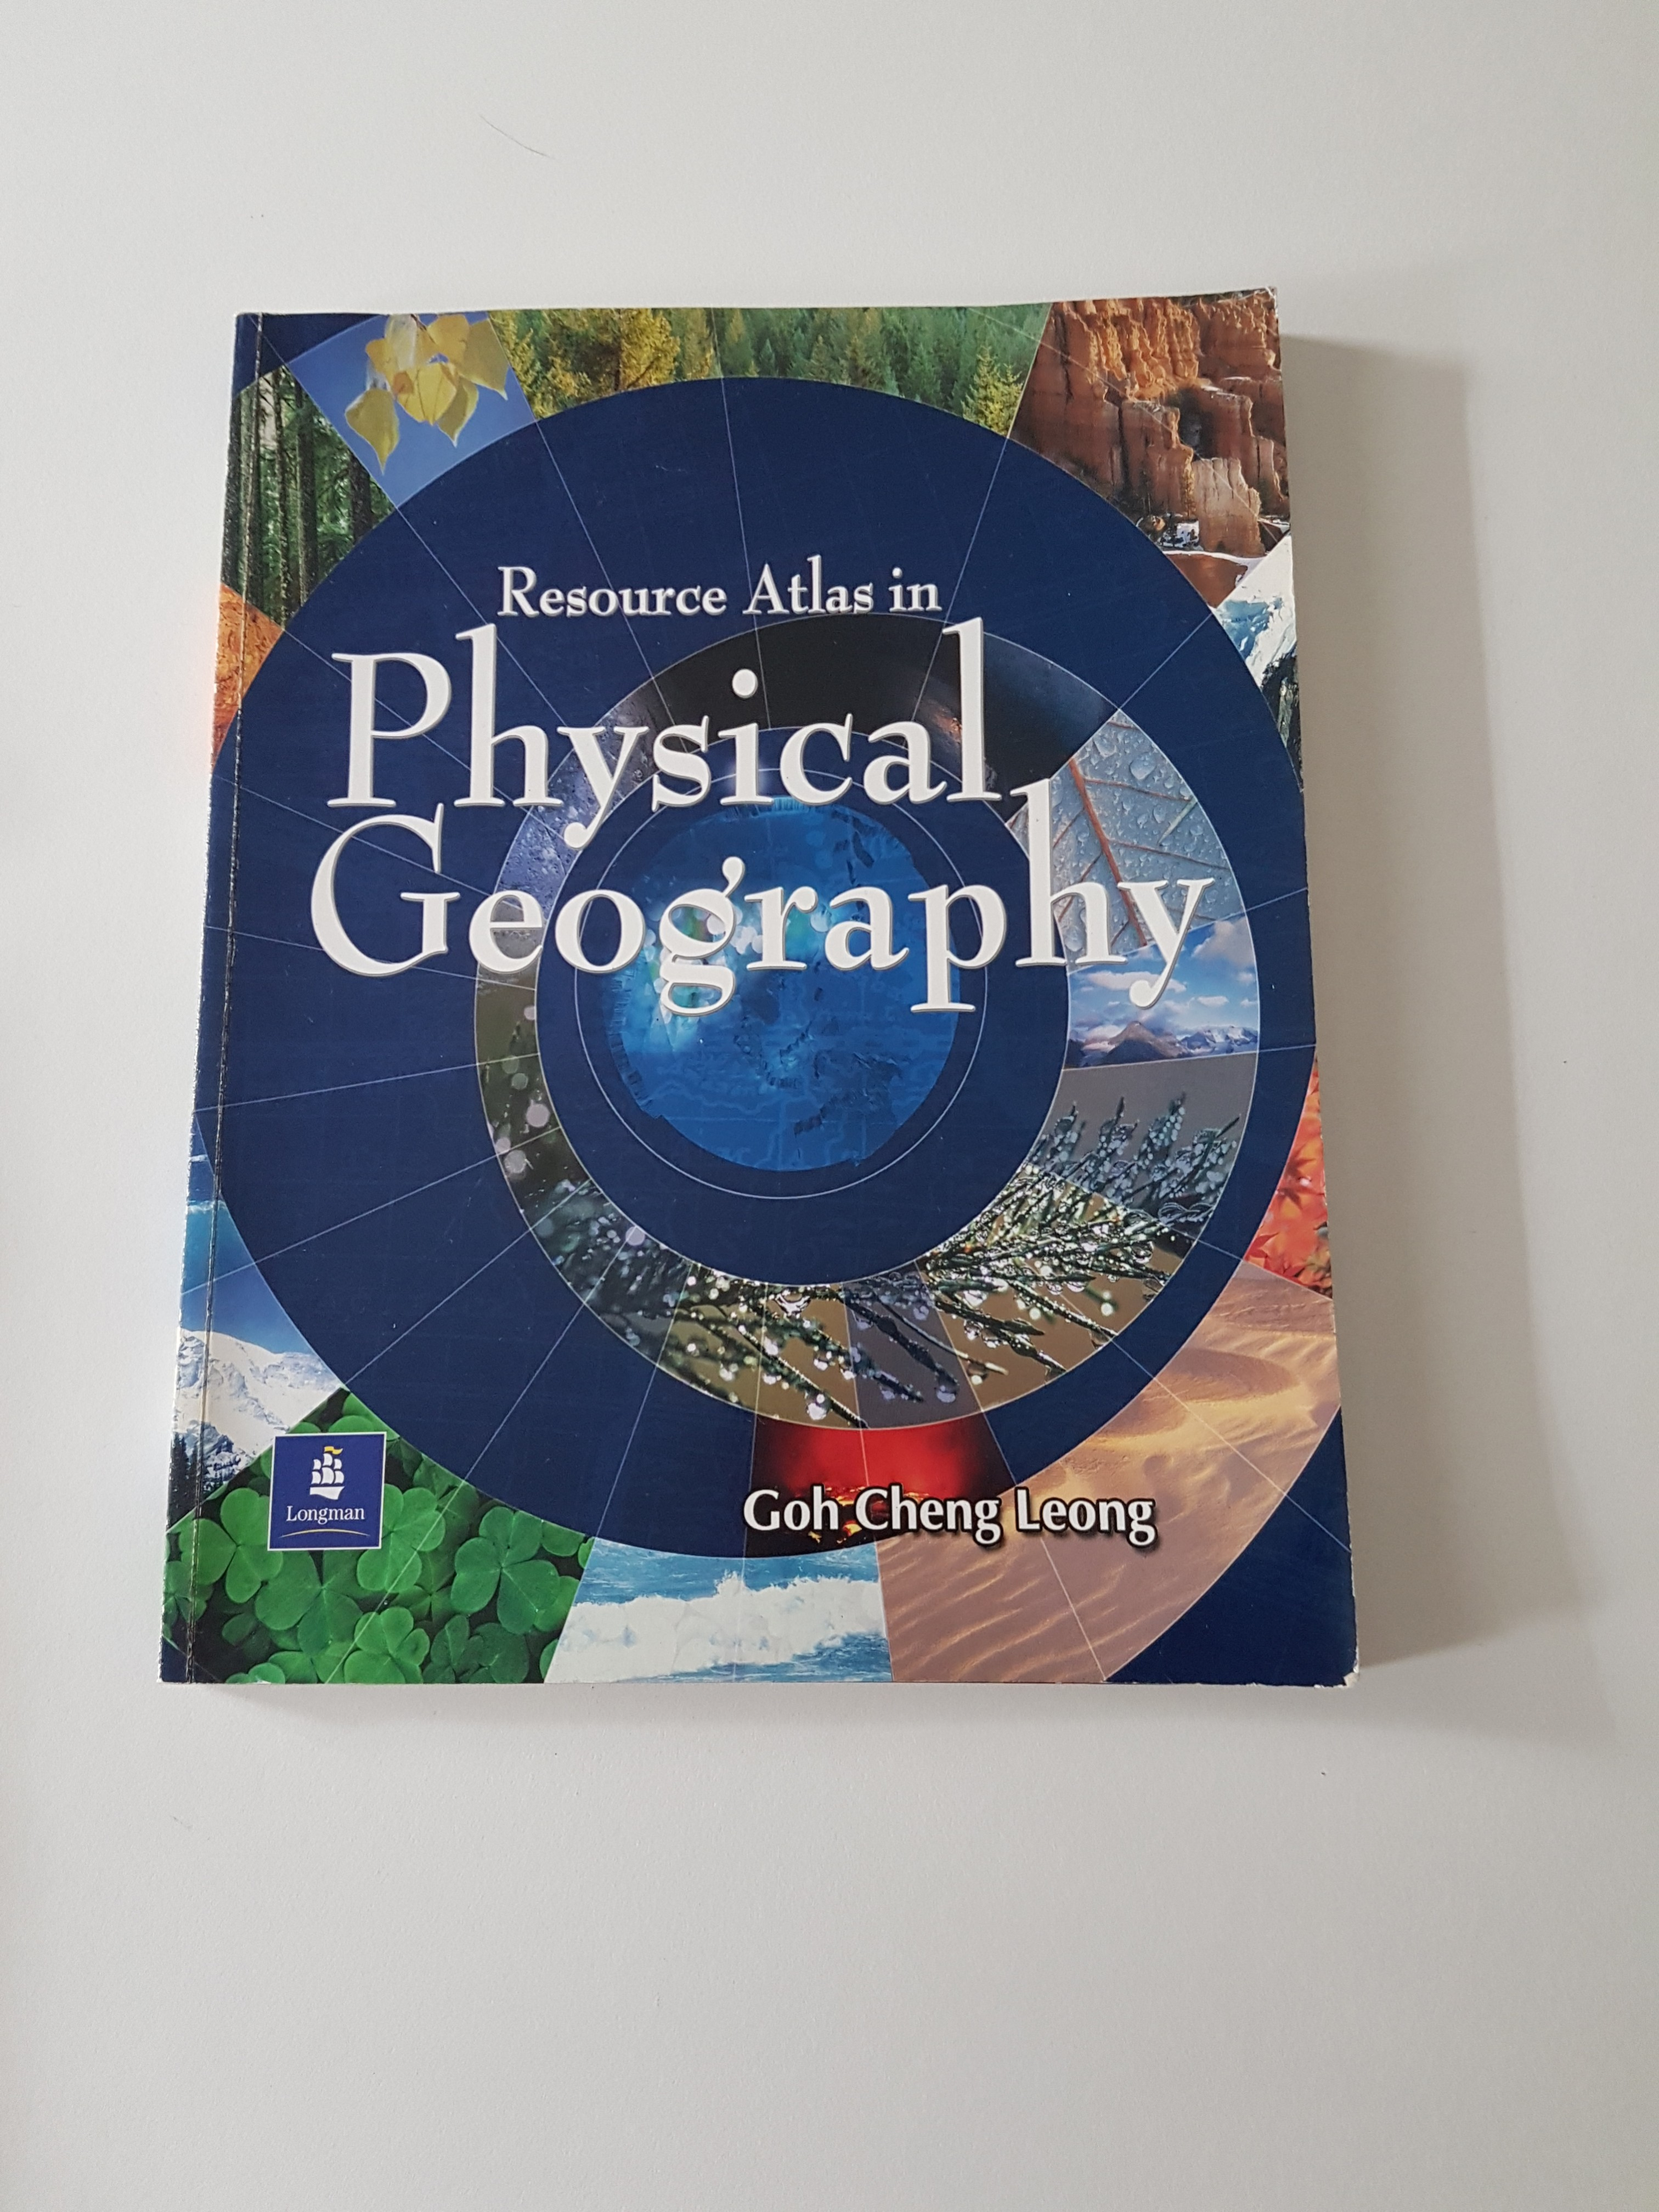 Resource Atlas Physical Geography by Goh Cheng Leong, Books